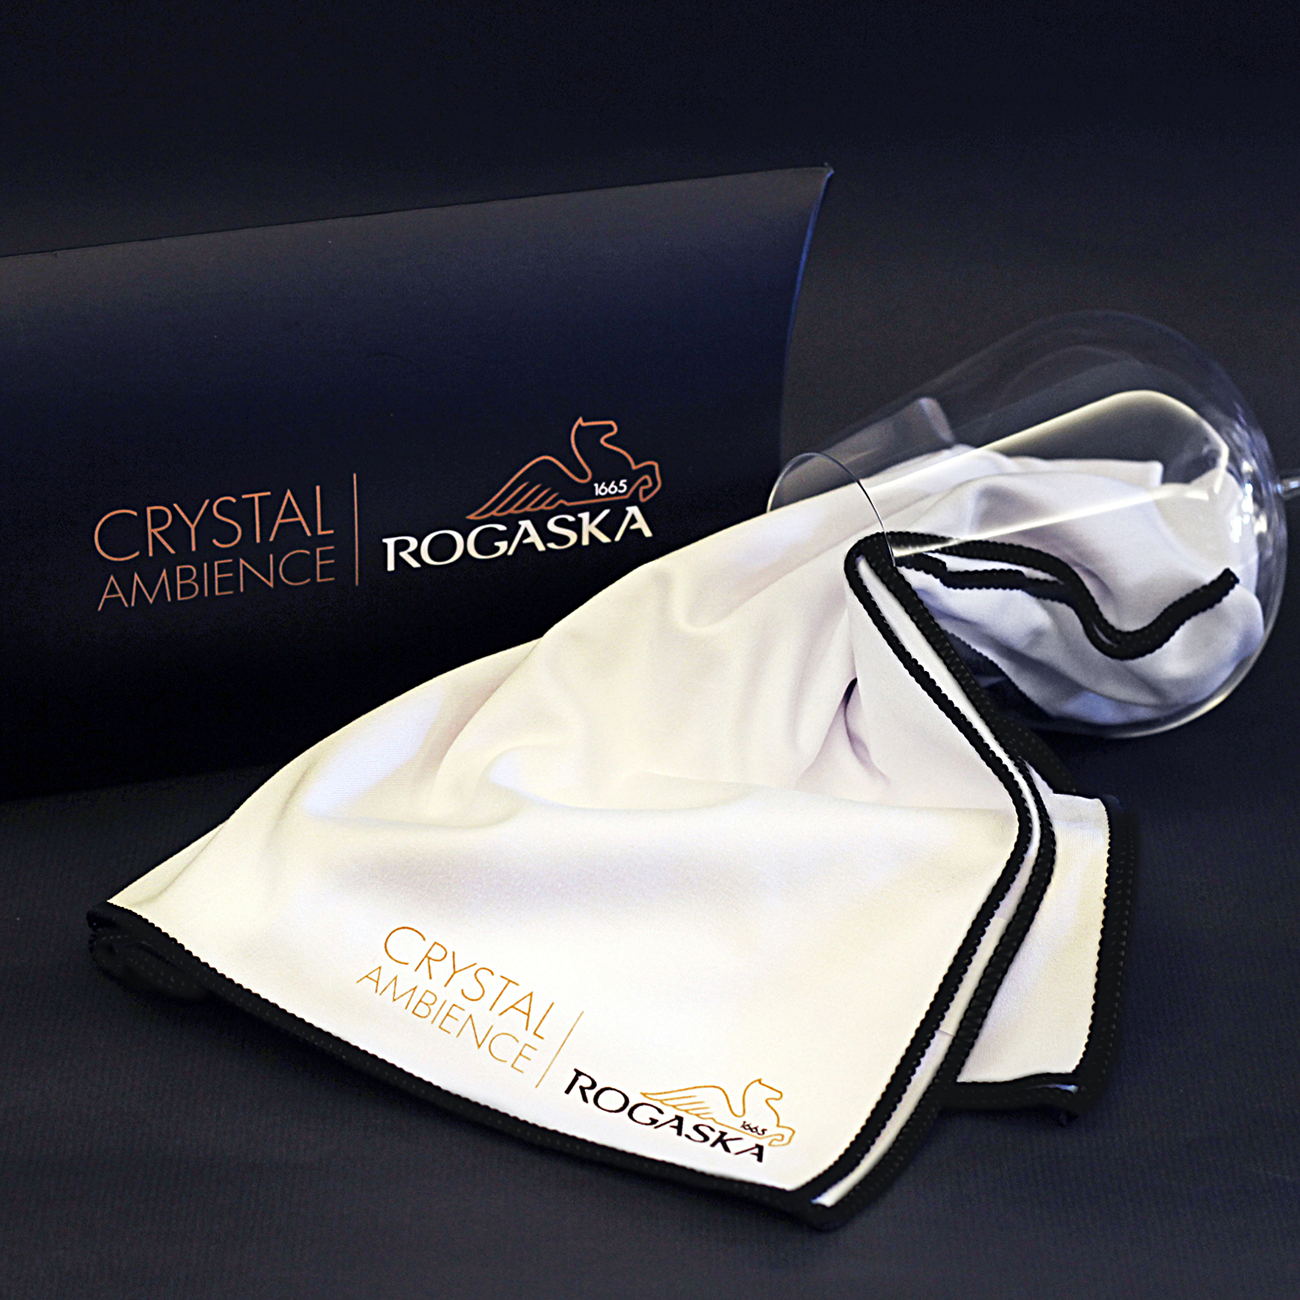 Rogaska Microfiber Cloth for Crystal Product 60x50cm 水晶專用 超細纖維 擦拭布